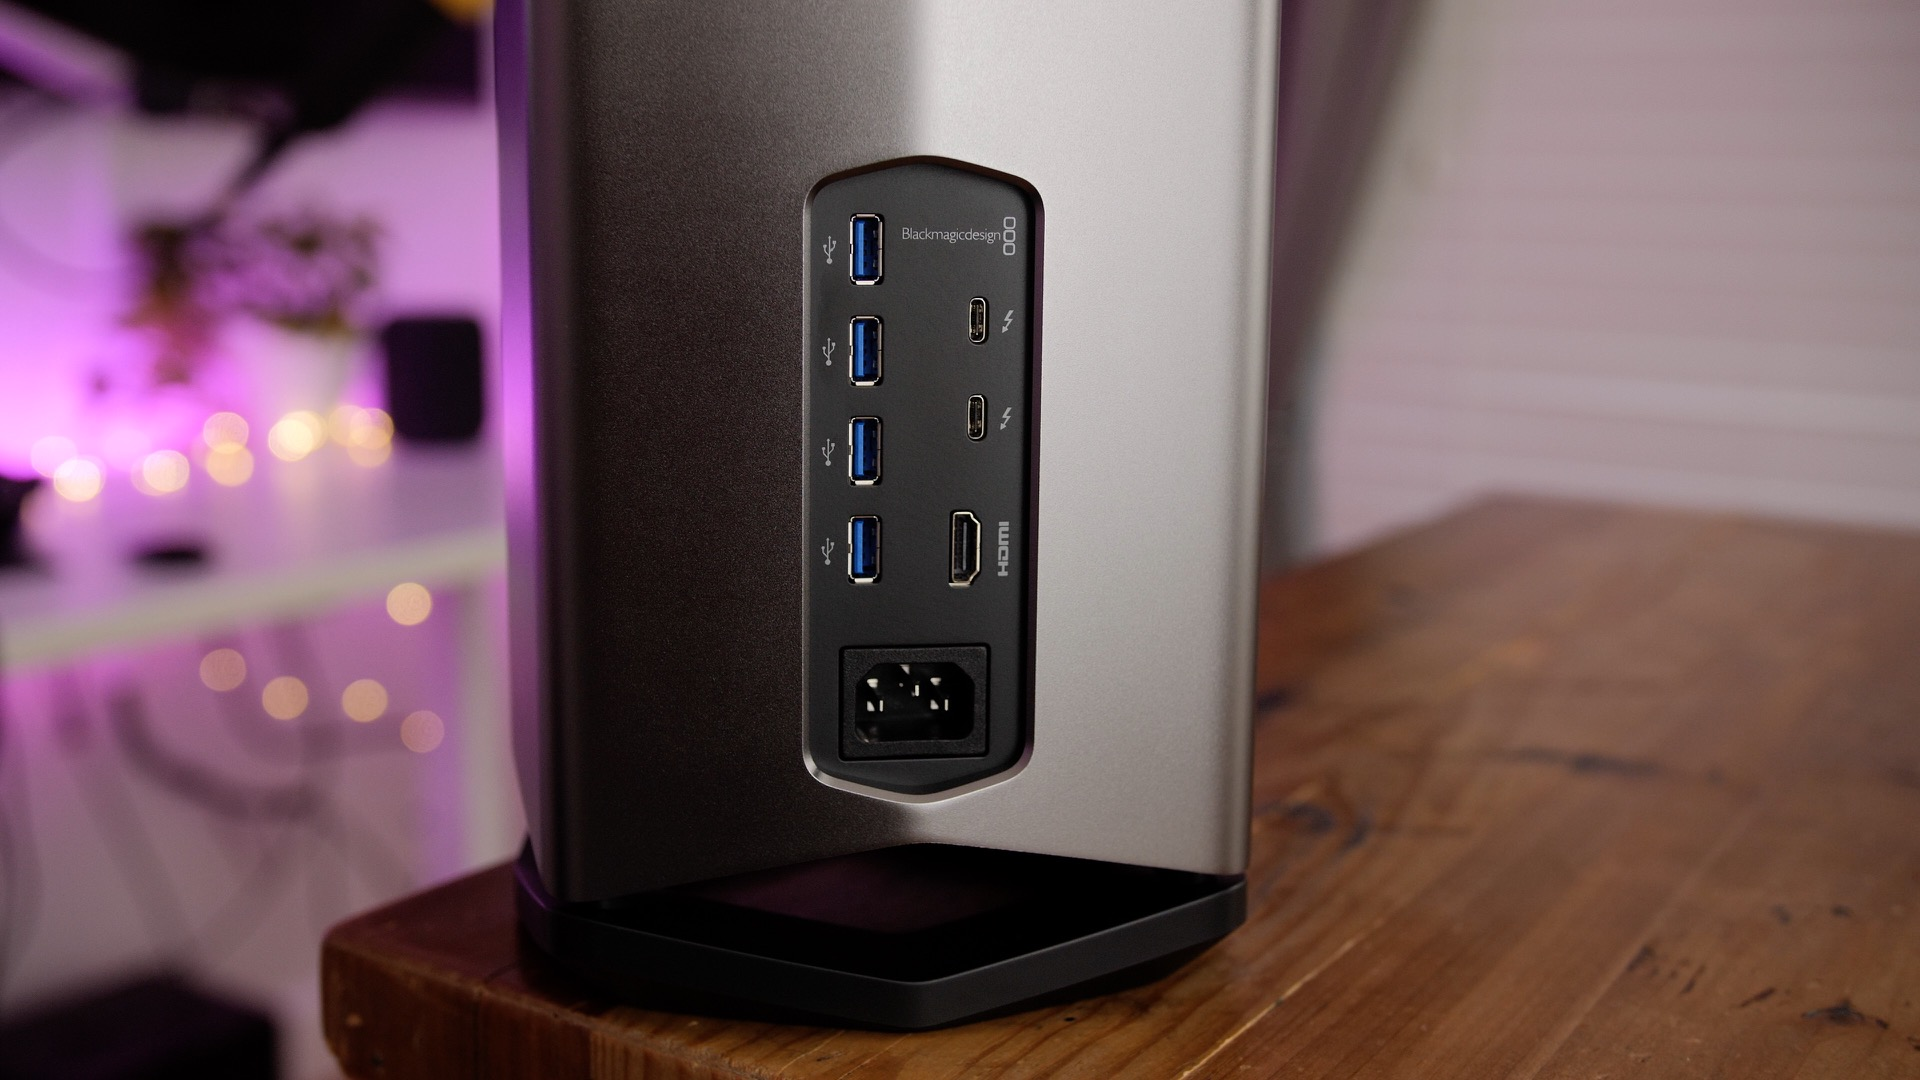 Review: Blackmagic eGPU - quiet, beautiful, and limited in